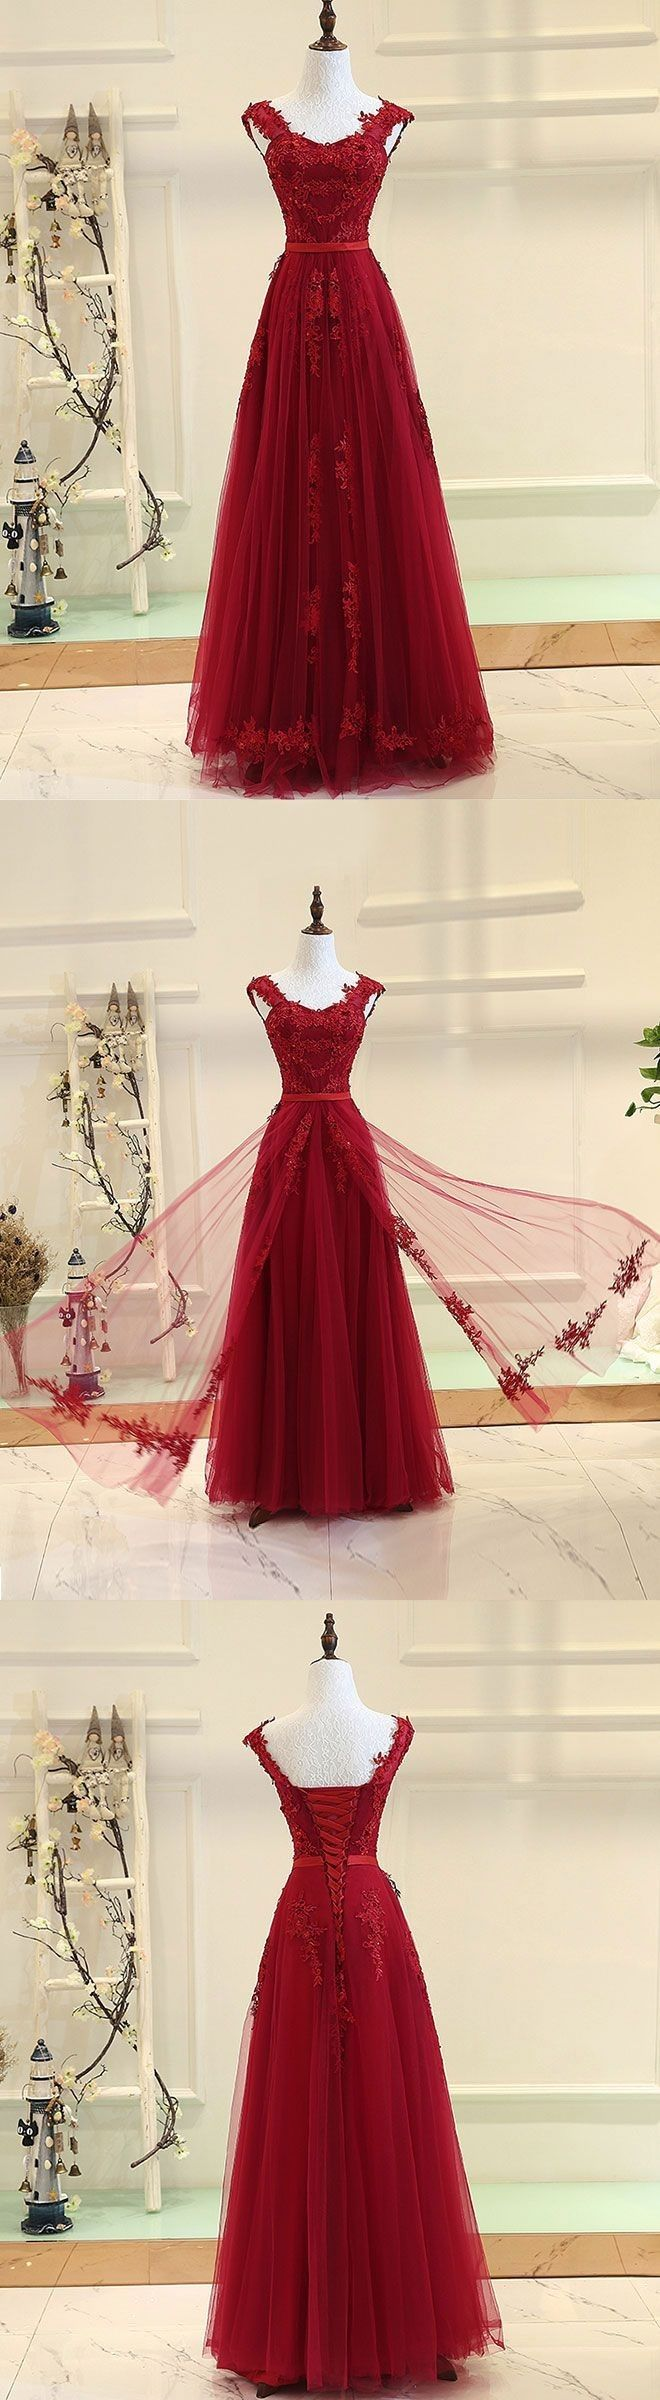 #Red #Chiffon #Tulle #Dresses #Gowns #Prom #PartyDress #EveningWear